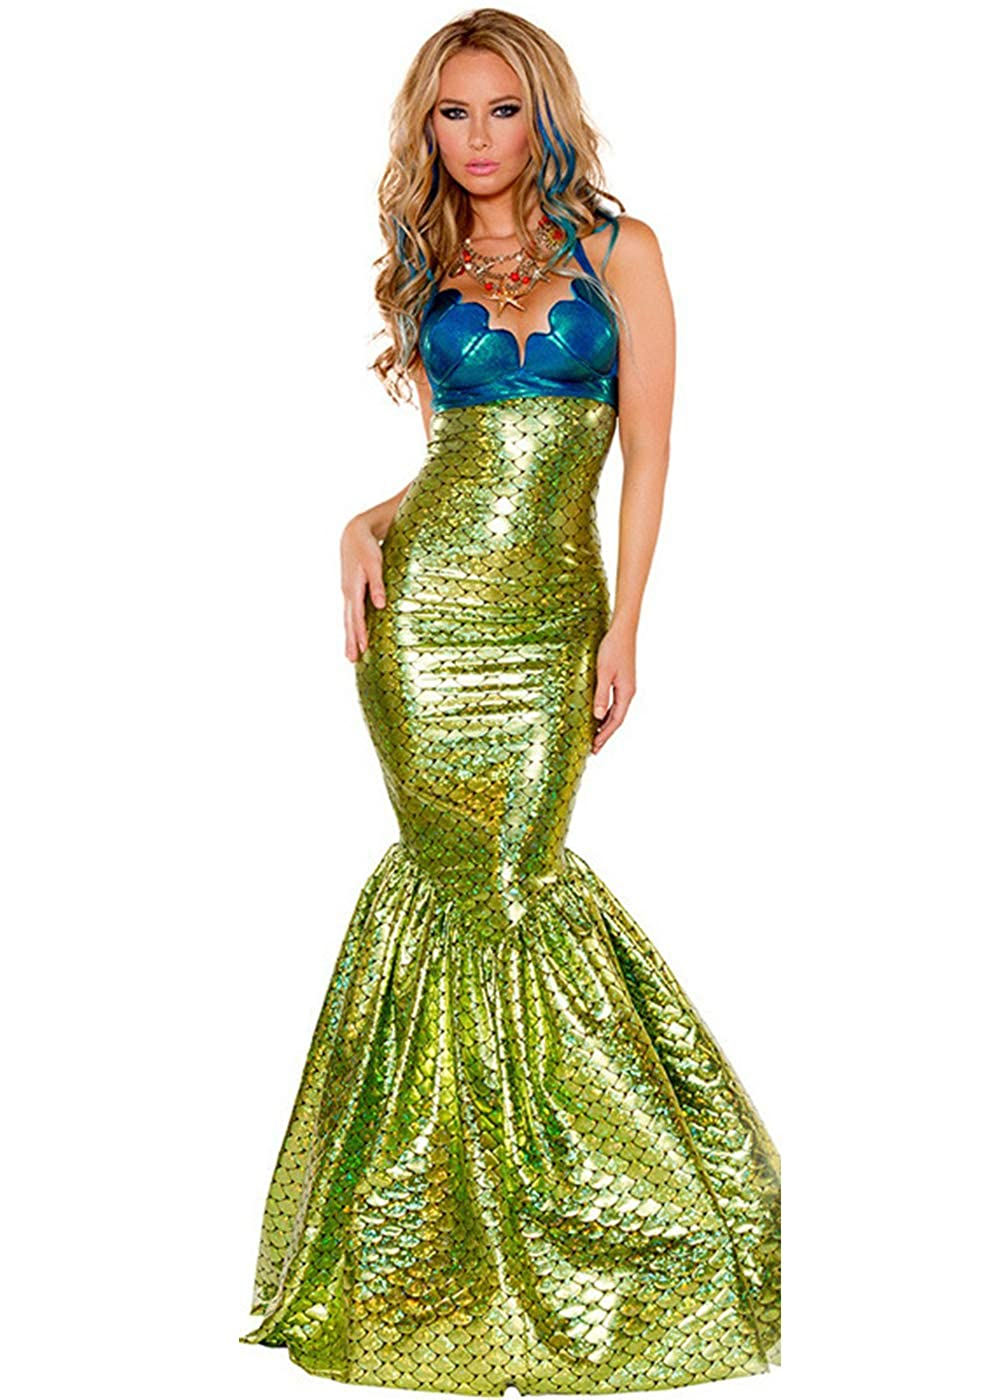 Women's Sexy Shimmer Mermaid Costume - DeluxeAdultCostumes.com